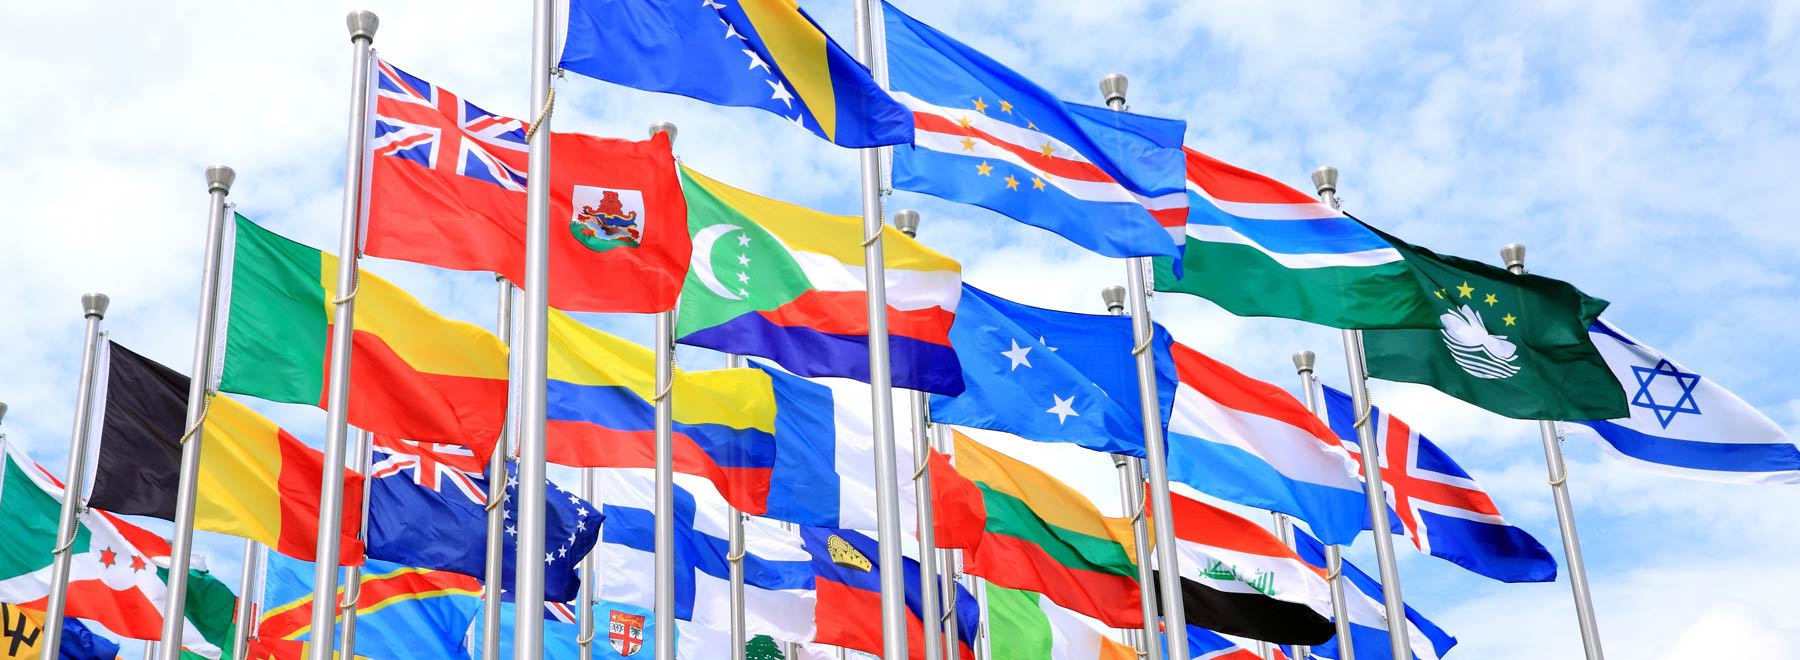 Row of international flags